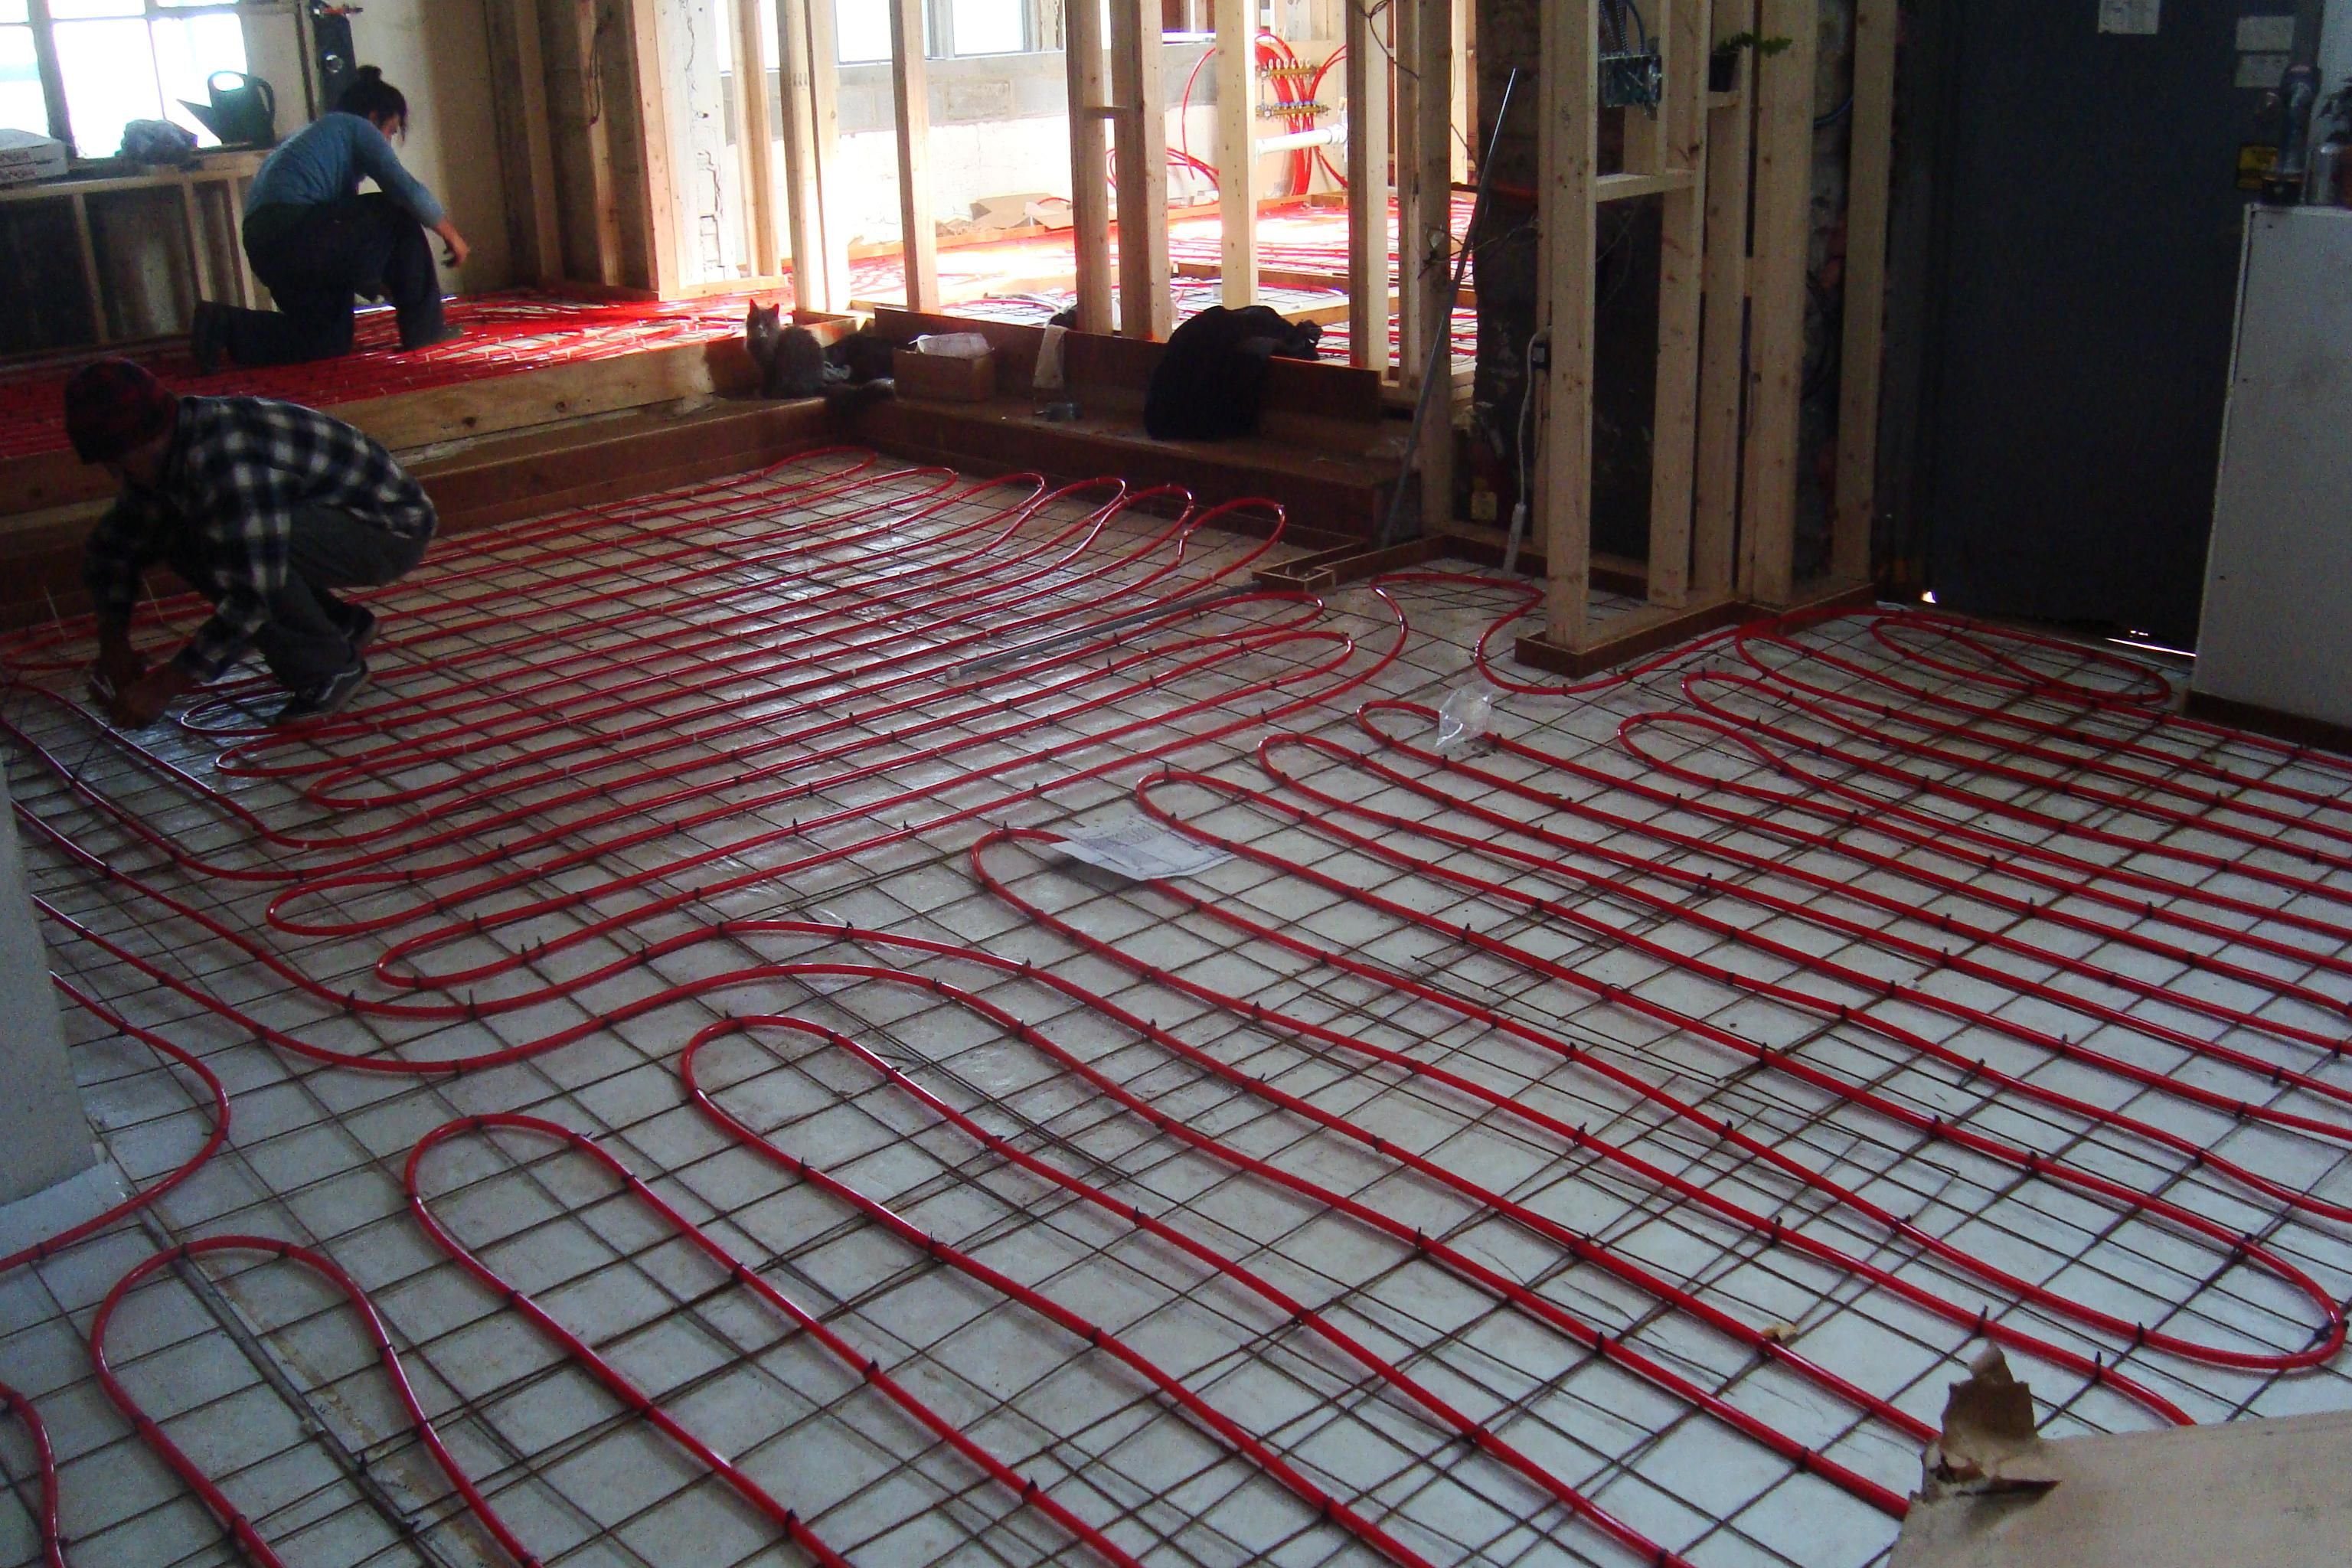 Electric Radiant Floor Heating: Basics, Cost, Pros & Cons